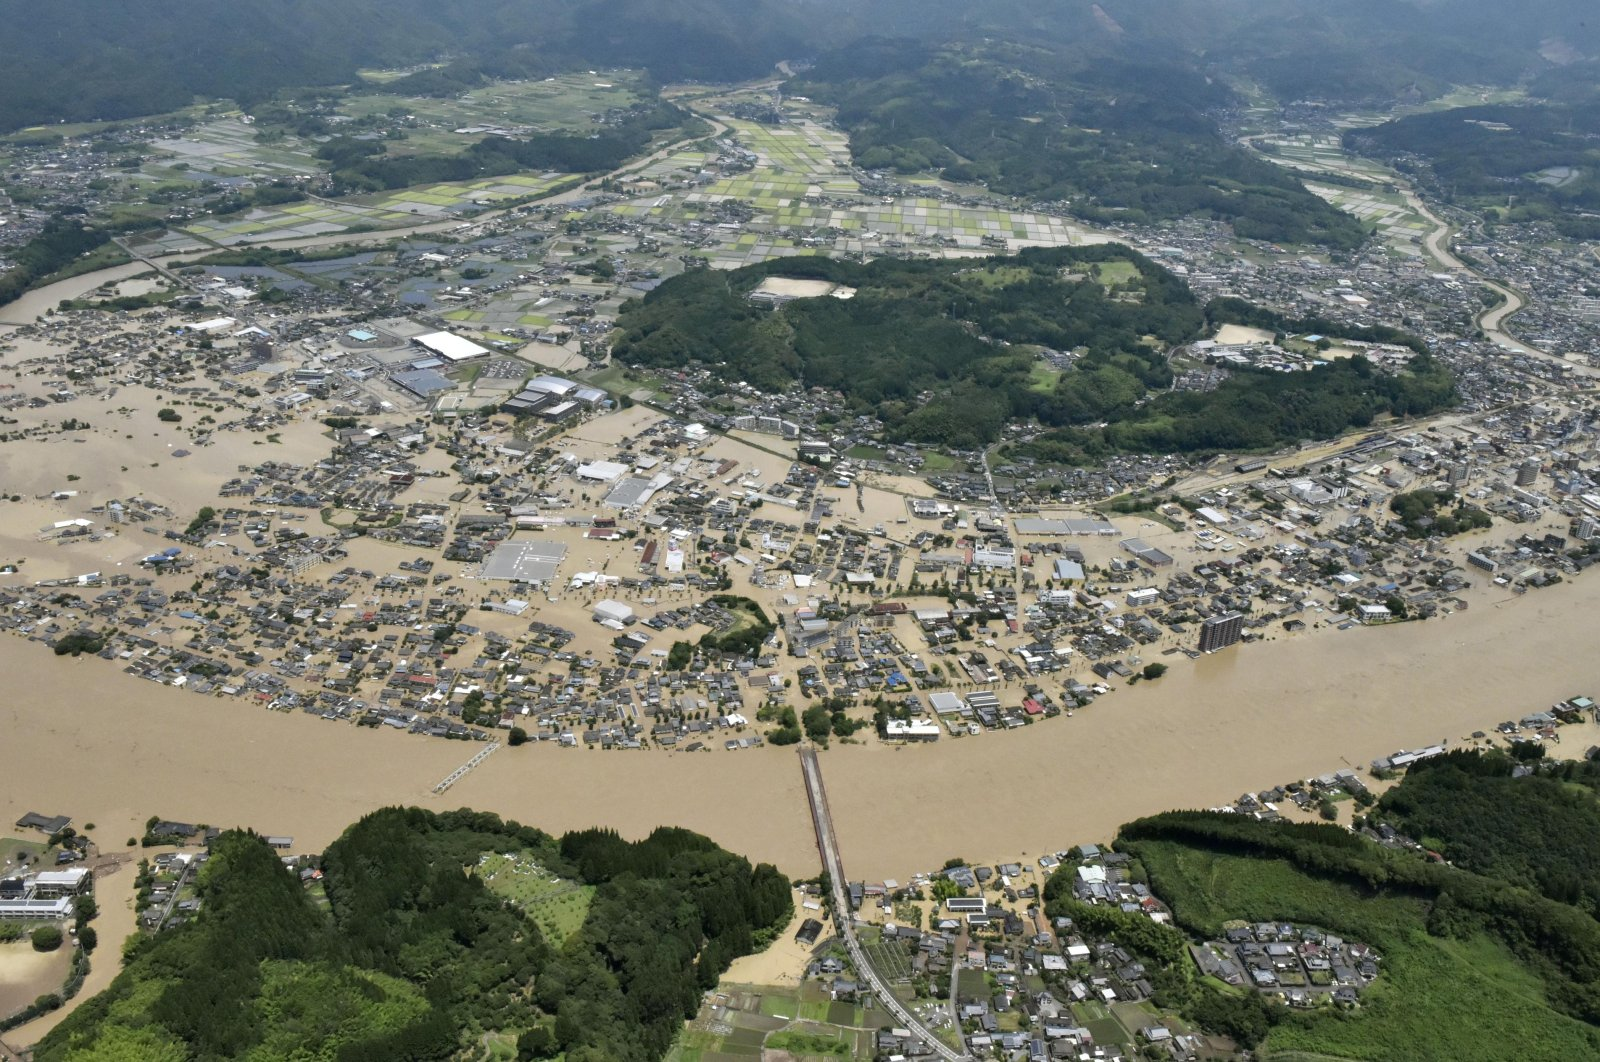 Areas are inundated in muddy waters that gushed out from the Kuma River in Hitoyoshi, Kumamoto prefecture, southwestern Japan, Saturday, July 4, 2020. (Kyodo News via AP)